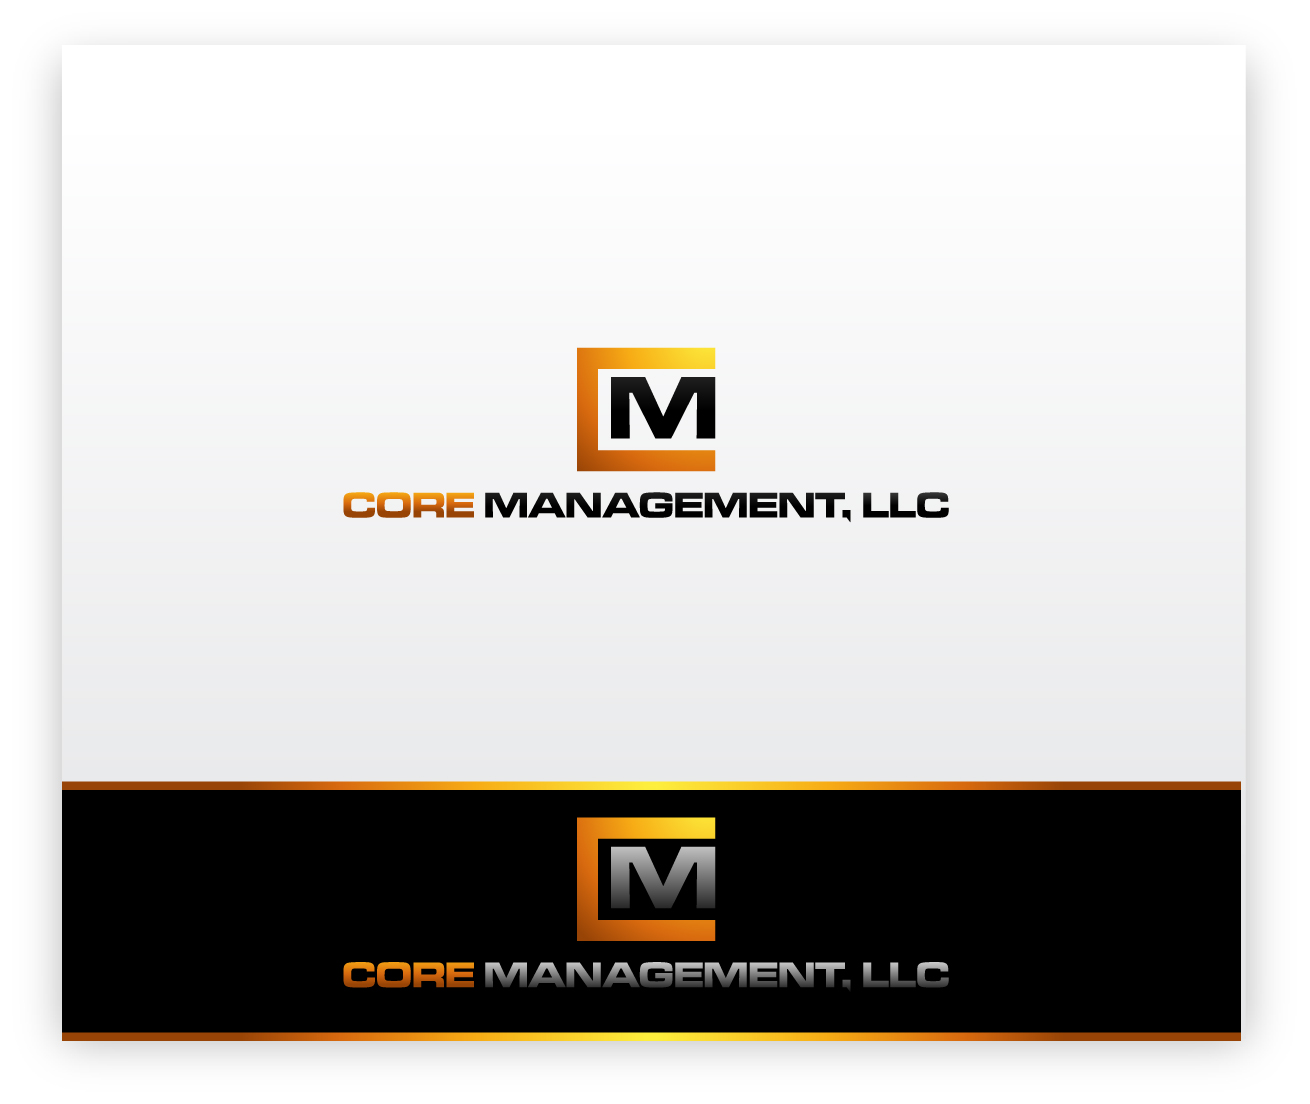 Logo Design by zoiDesign - Entry No. 60 in the Logo Design Contest Creative Logo Design for CORE Management, LLC.